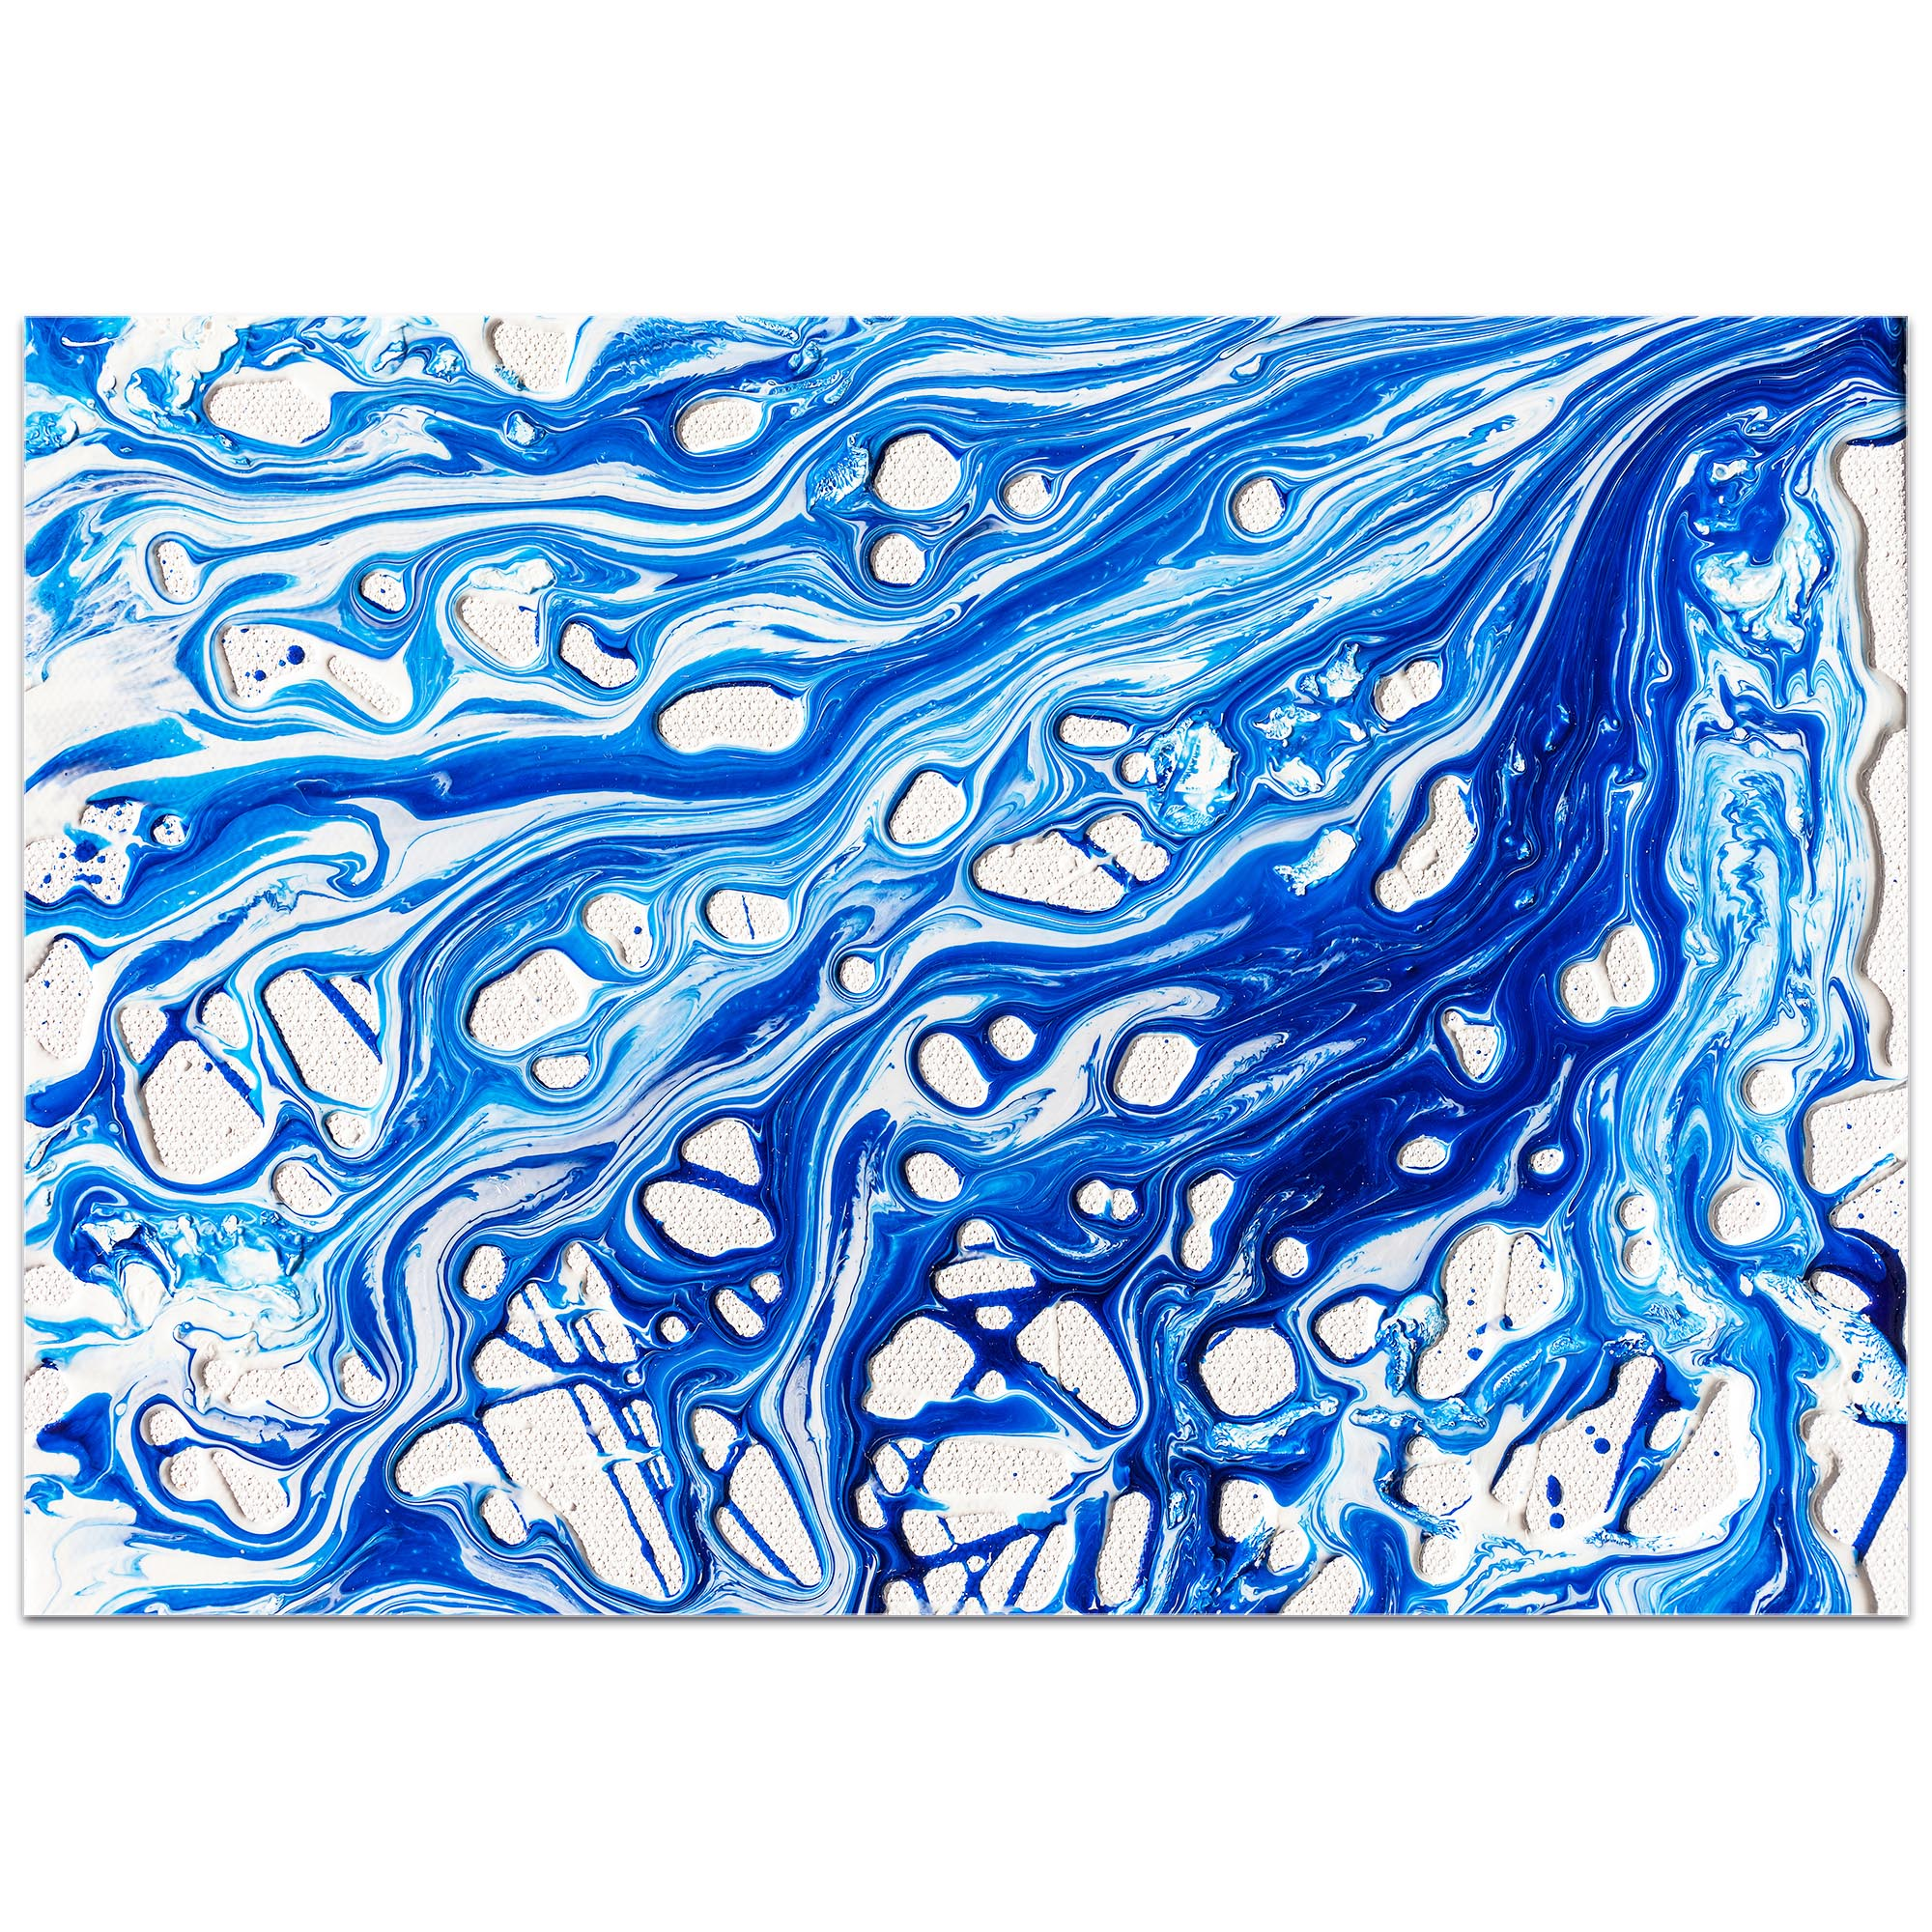 Abstract Wall Art 'Coastal Waters 2' - Colorful Urban Decor on Metal or Plexiglass - Image 2